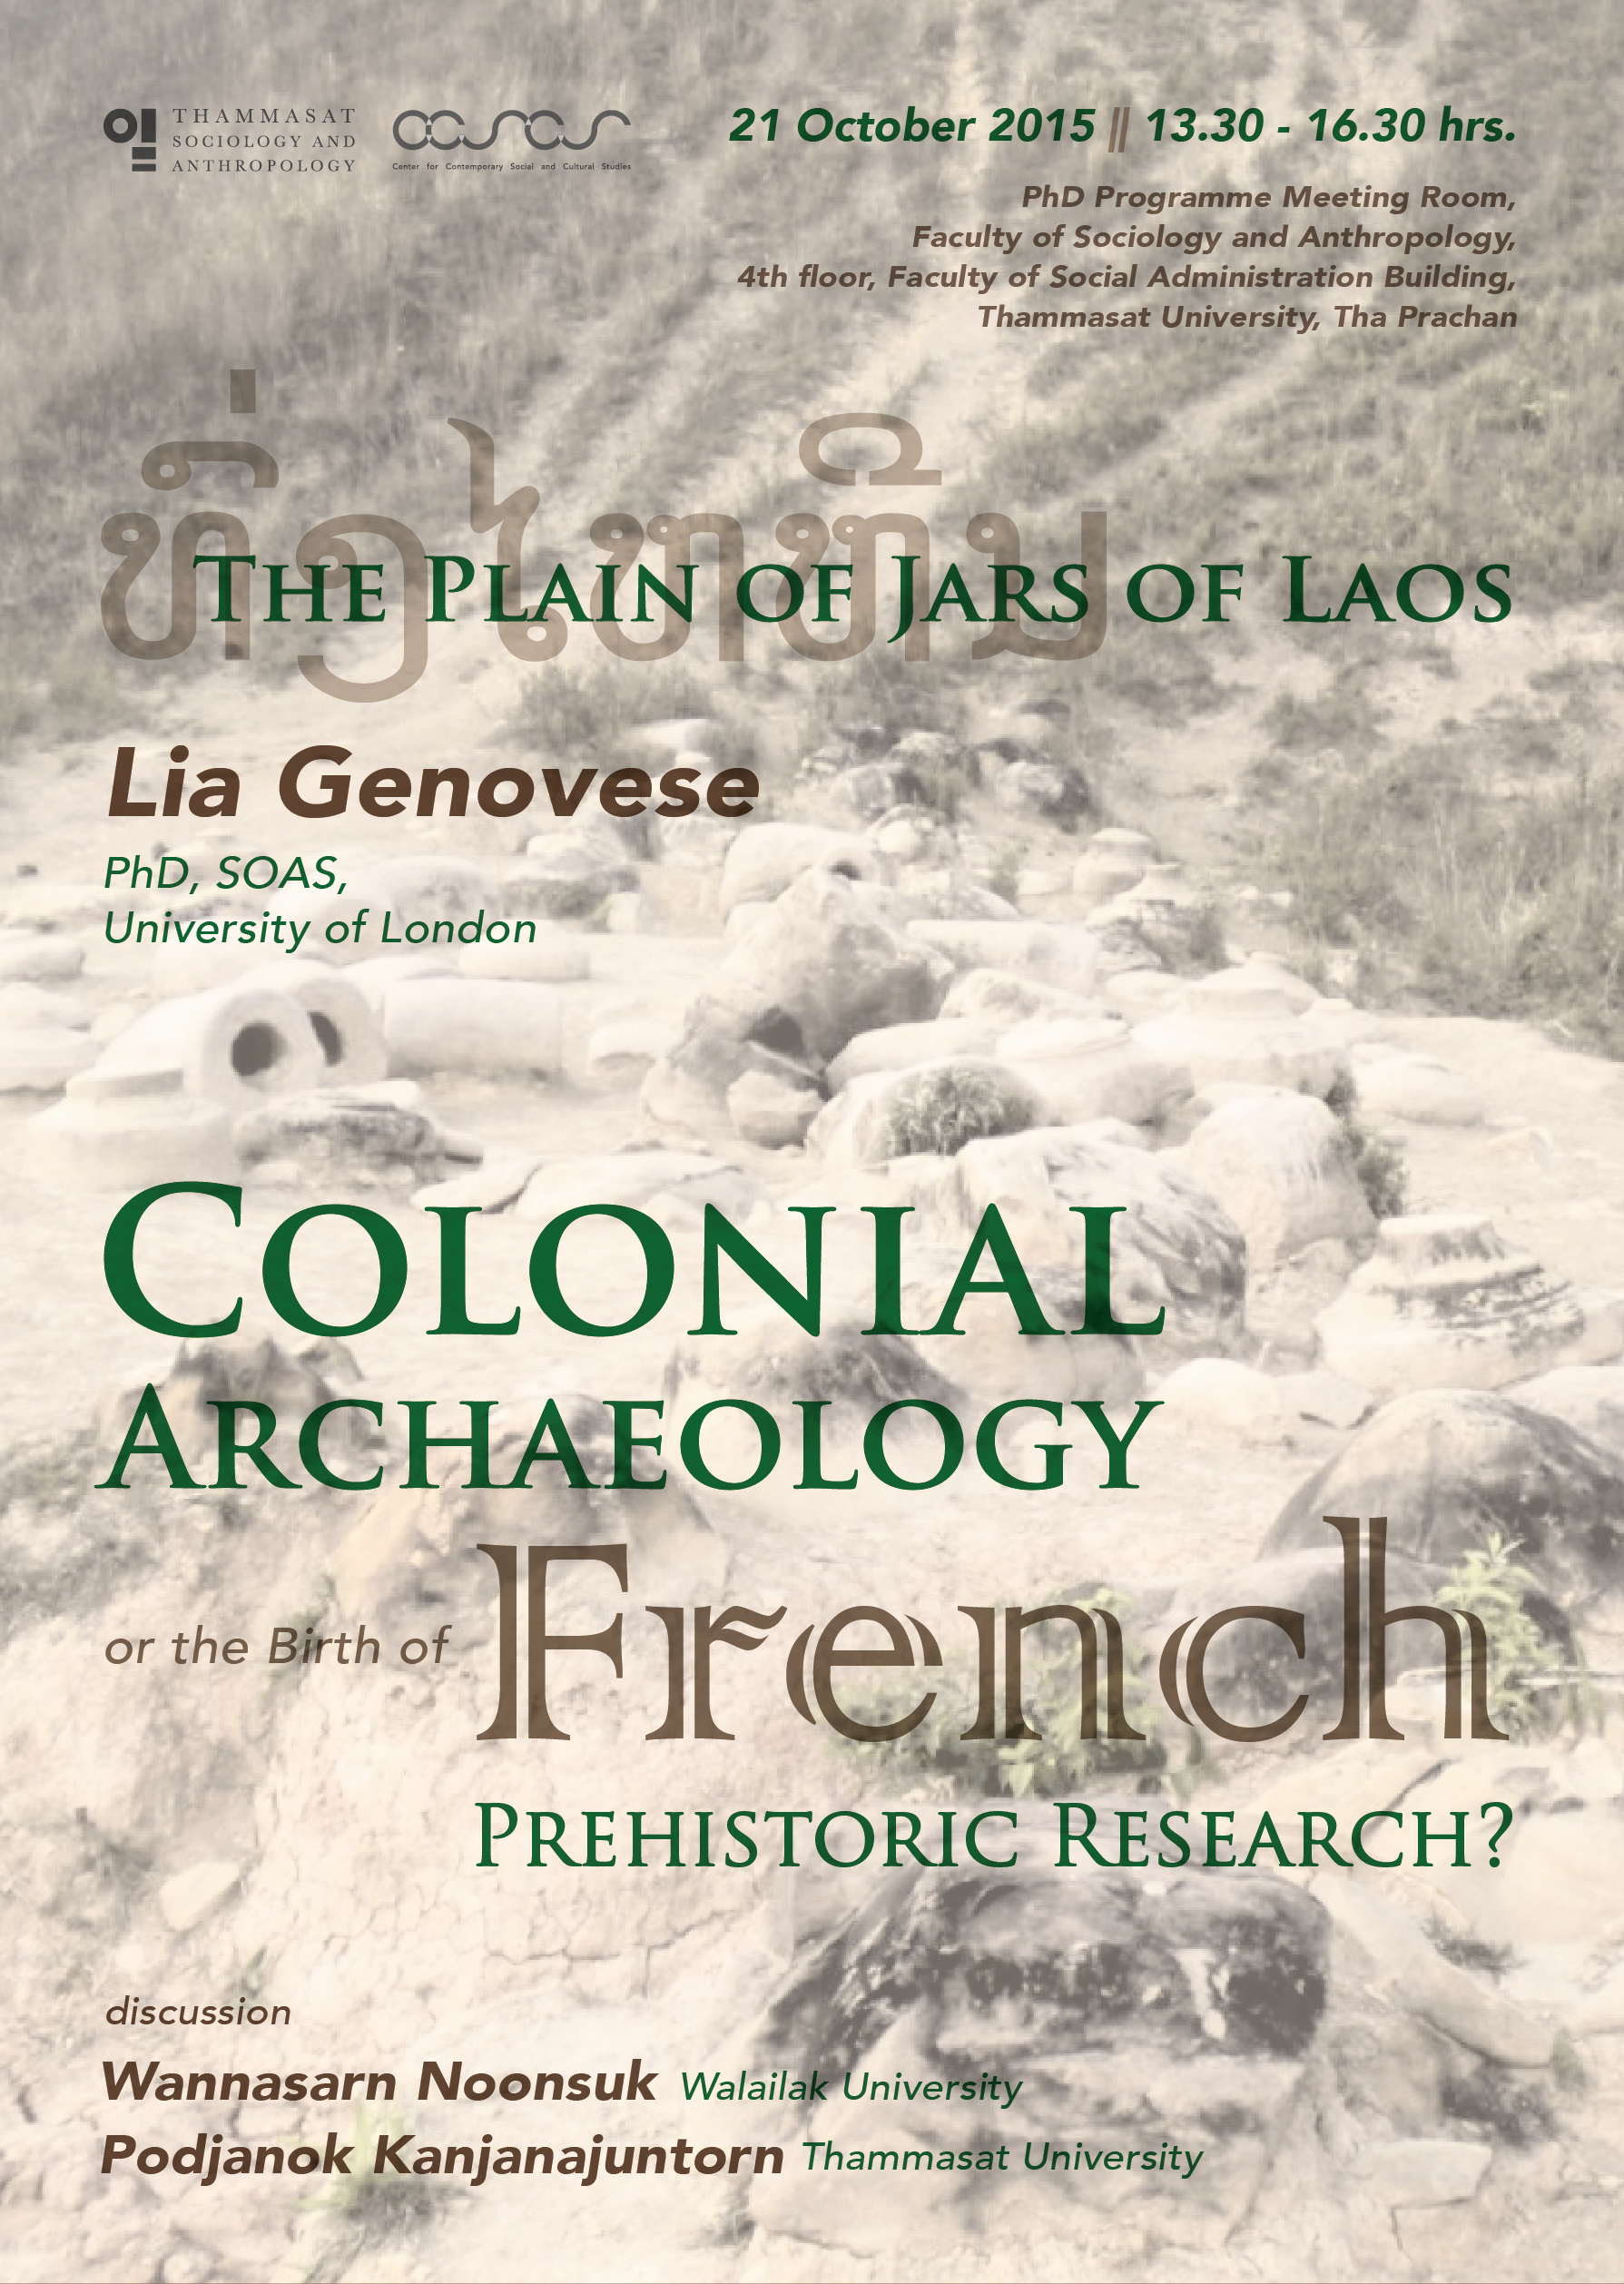 genovese-colonial archaeology